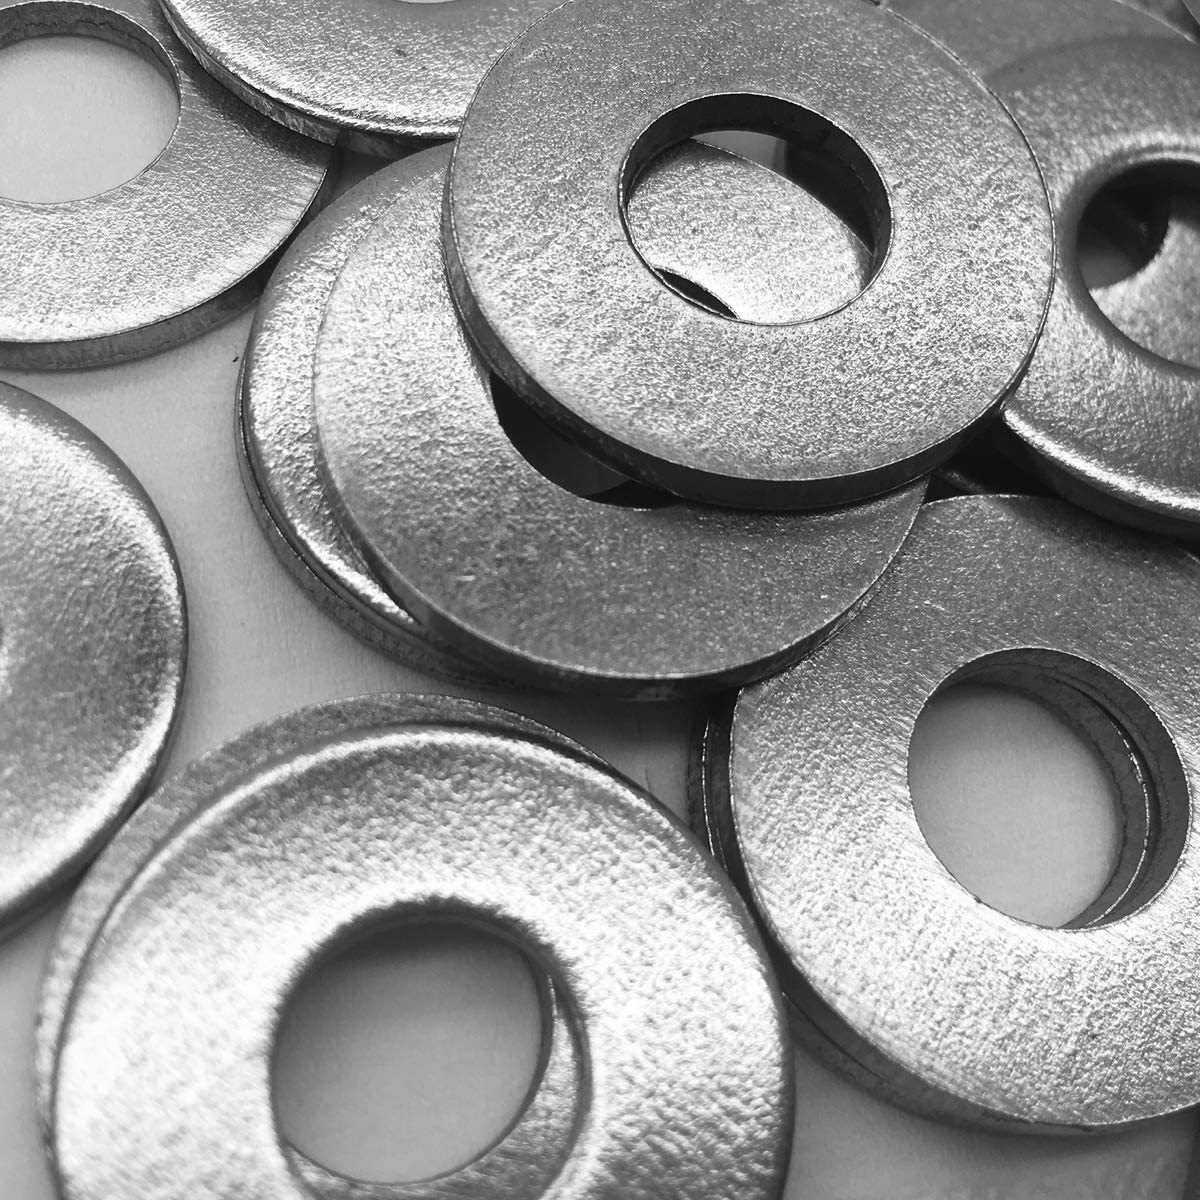 """M10 NGe M10 Stainless Flat Finish Washers 1.18/"""" 18-8 Stainless Steel 30mm 25Pcs OD"""